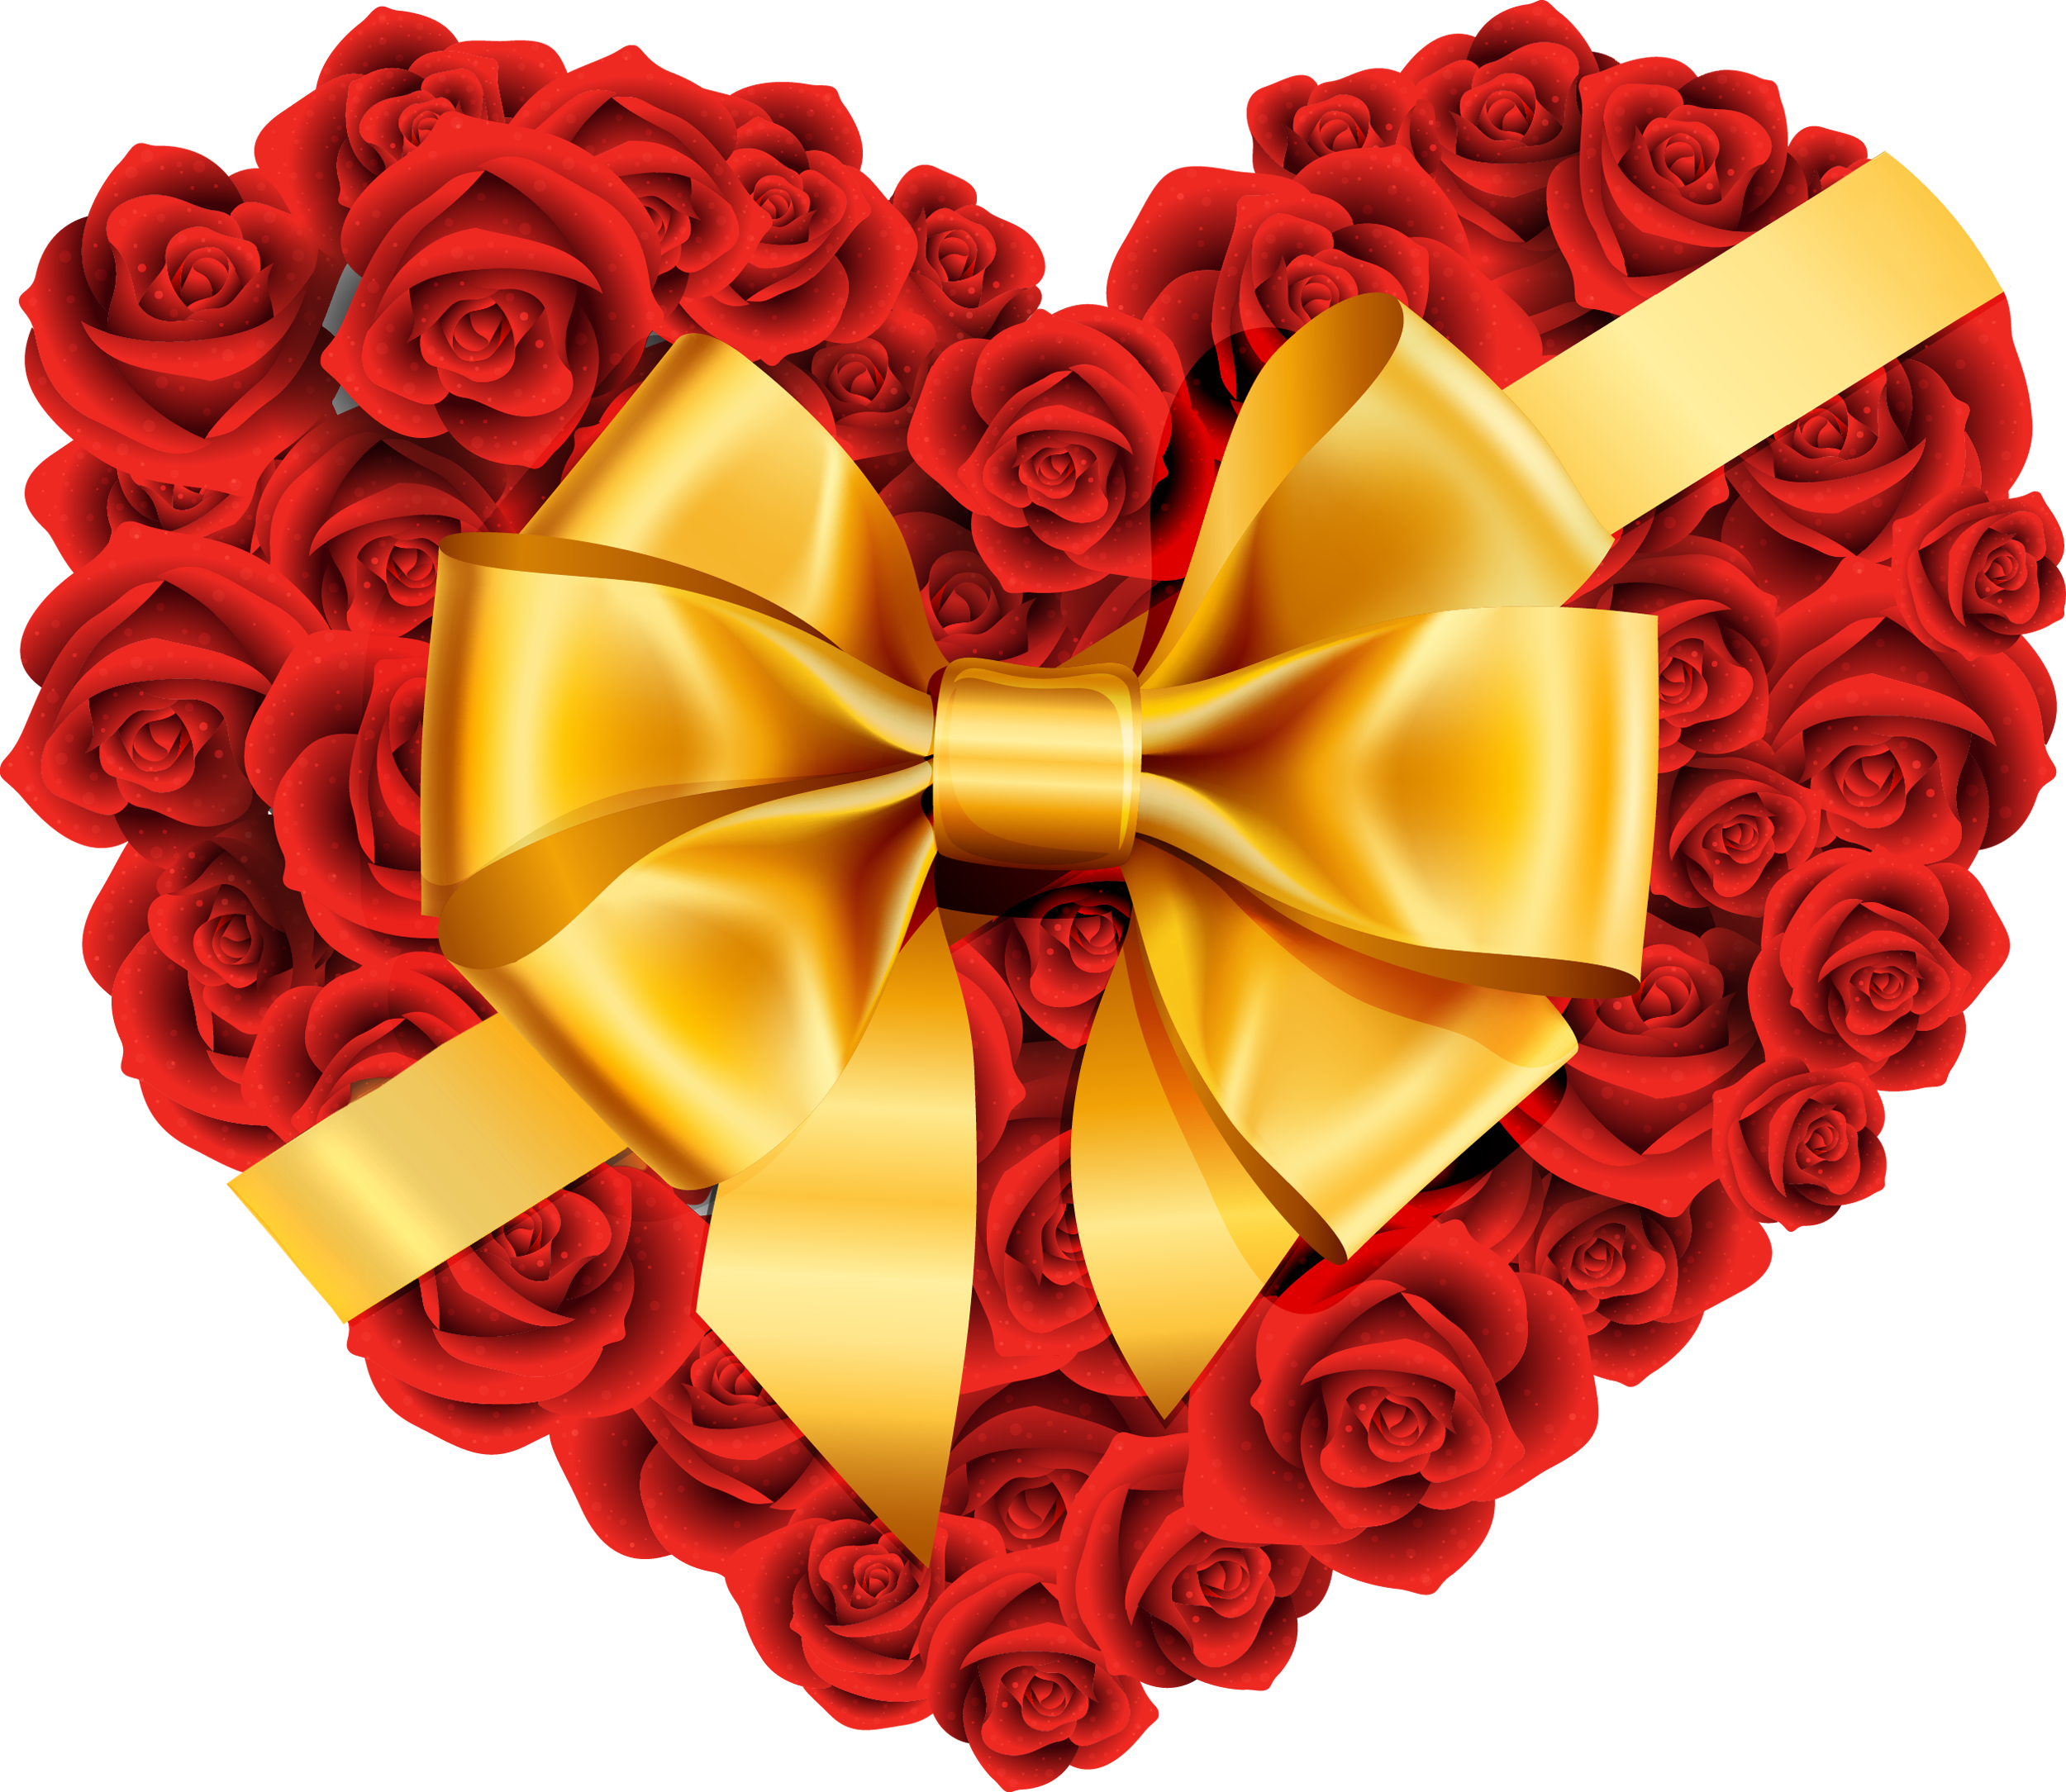 Large heart with bow. Clipart roses rose gold